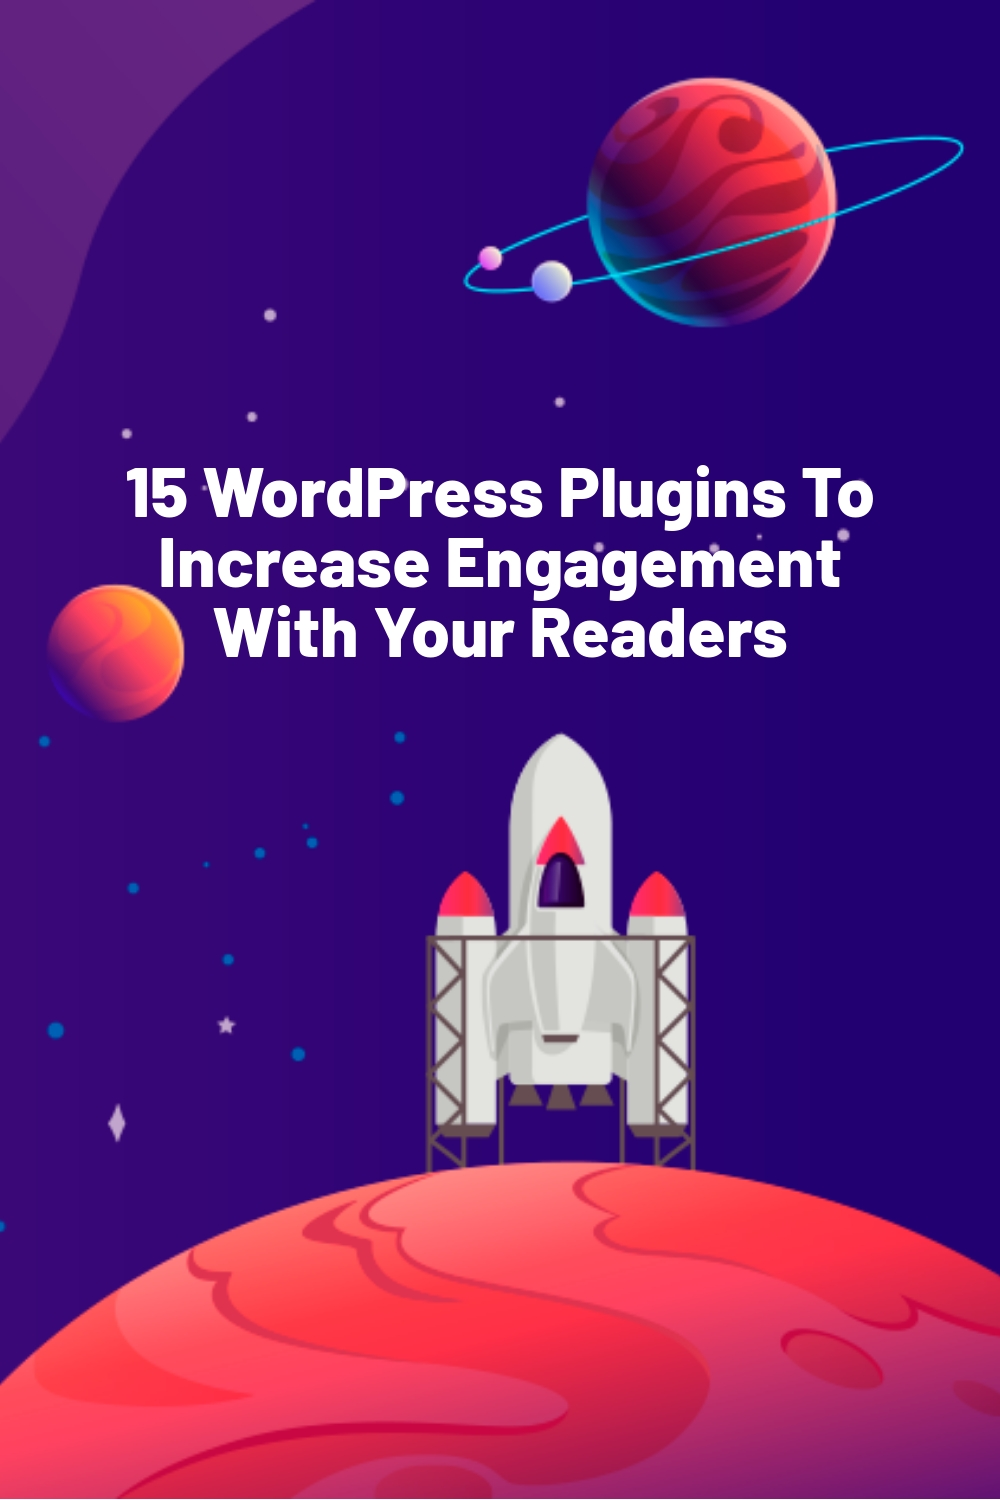 15 WordPress Plugins To Increase Engagement With Your Readers